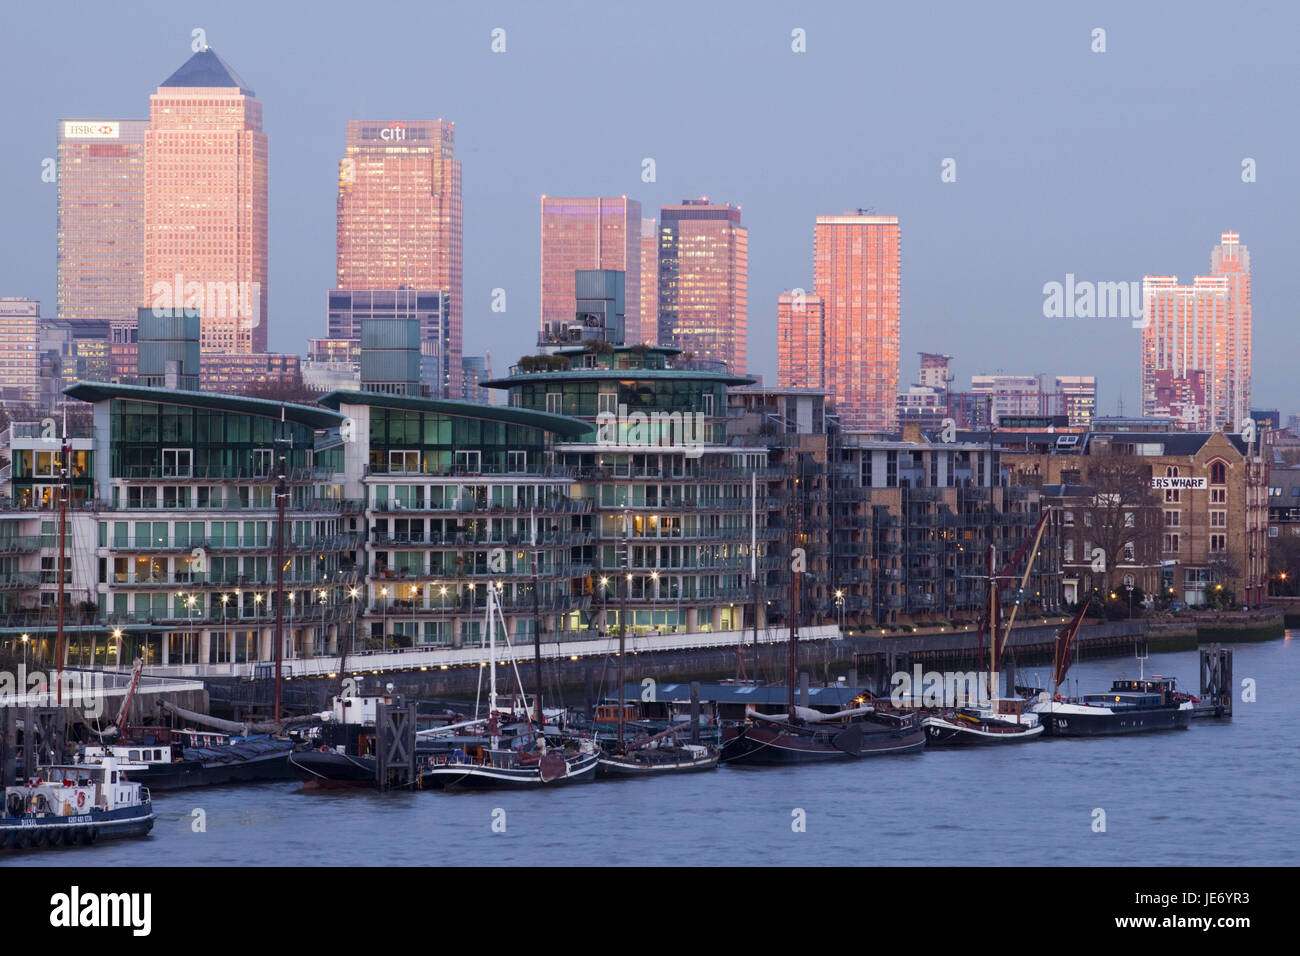 England, London, dock country, Canary Wharf, harbour, boats, UK, GB, part of town, houses, high rises, office buildings, - Stock Image